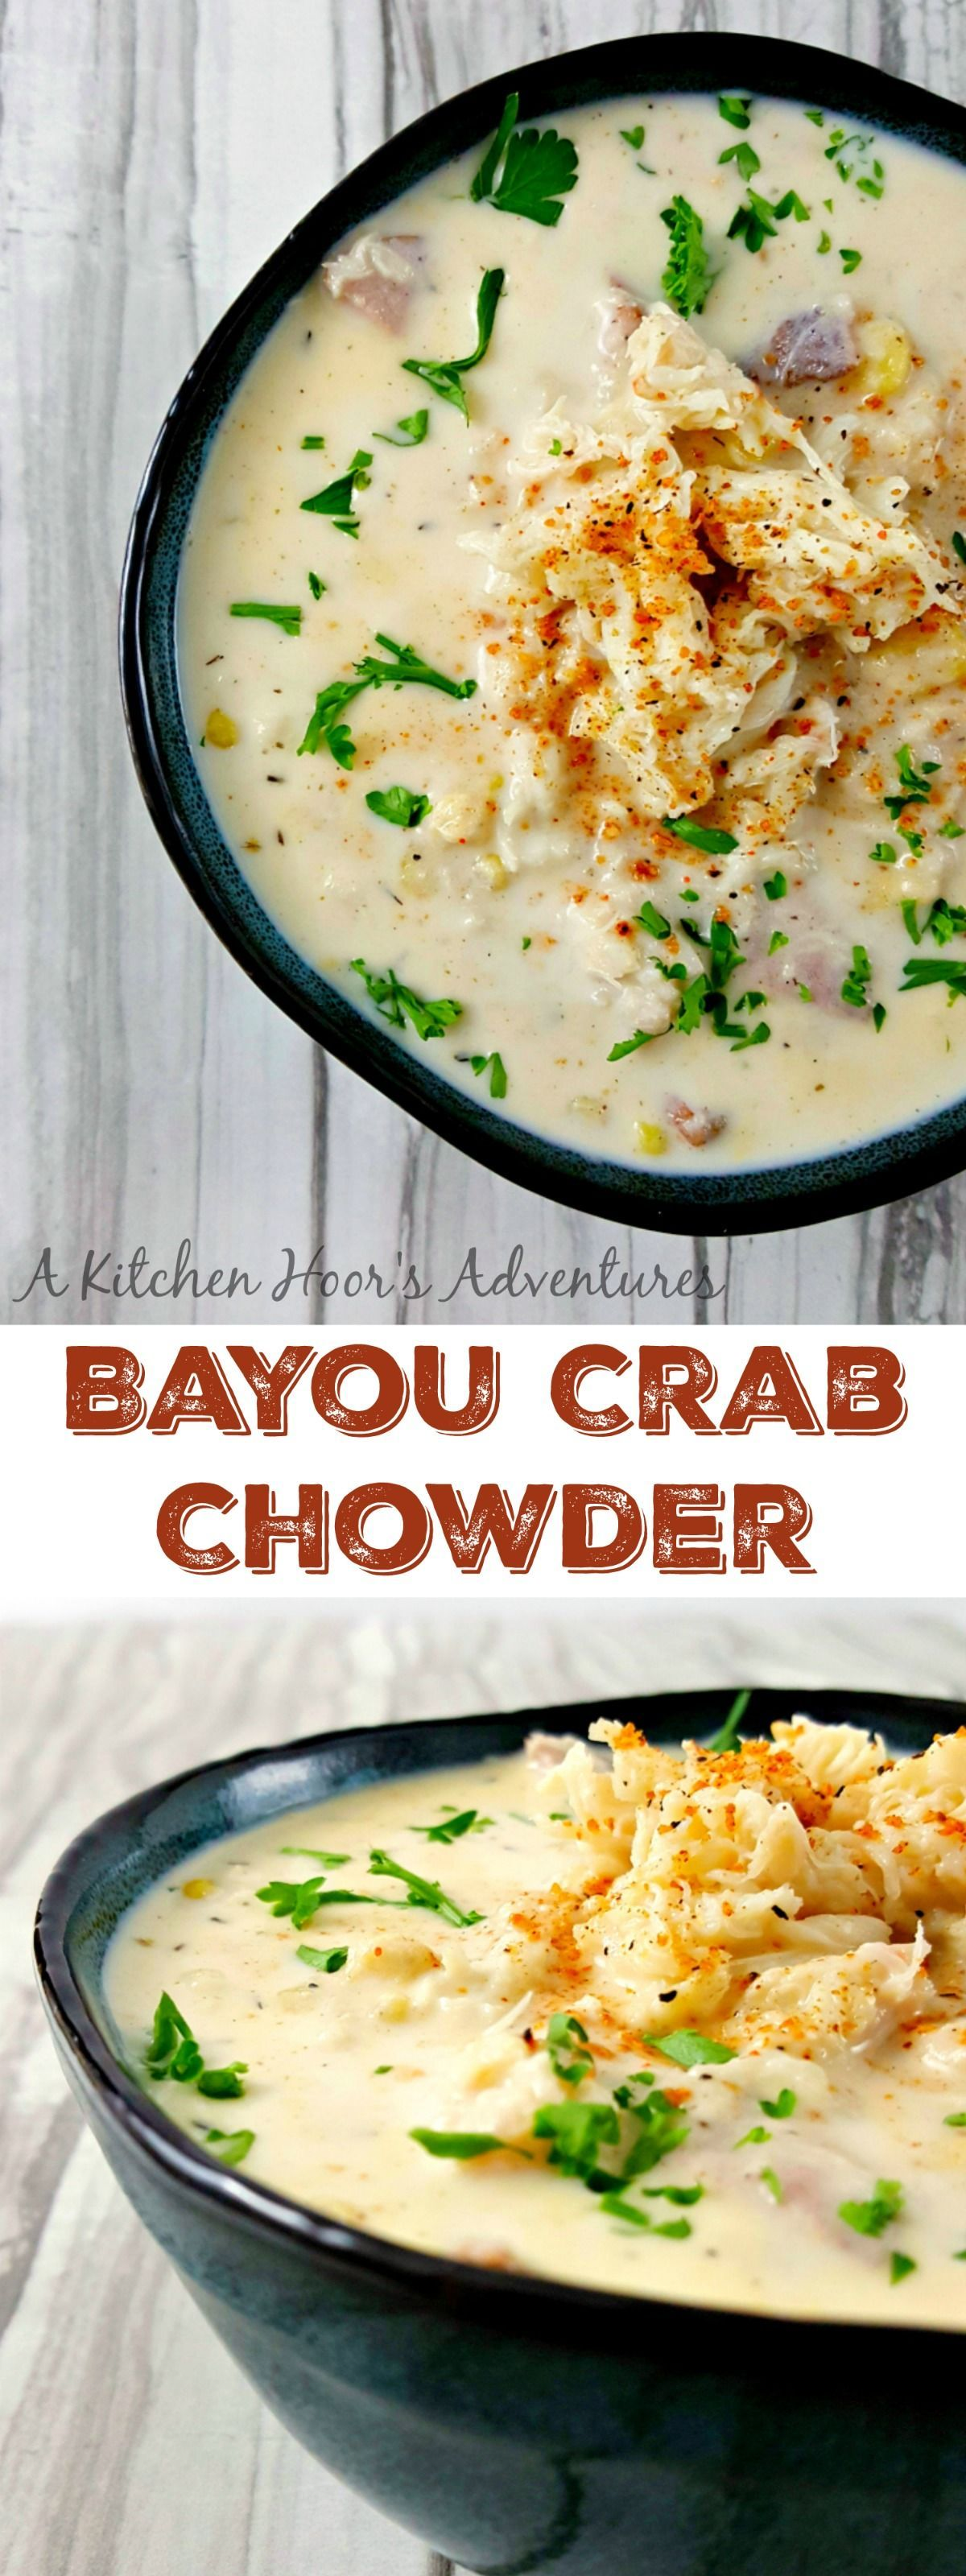 Bayou Crab Chowder is bowl of Cajun flavored deliciousness. There's hearty potatoes, sweet corn, smoky sausage, kicked up Cajun spices, and finally succulent crab in this seafood Cajun party in a bowl. #cajundishes